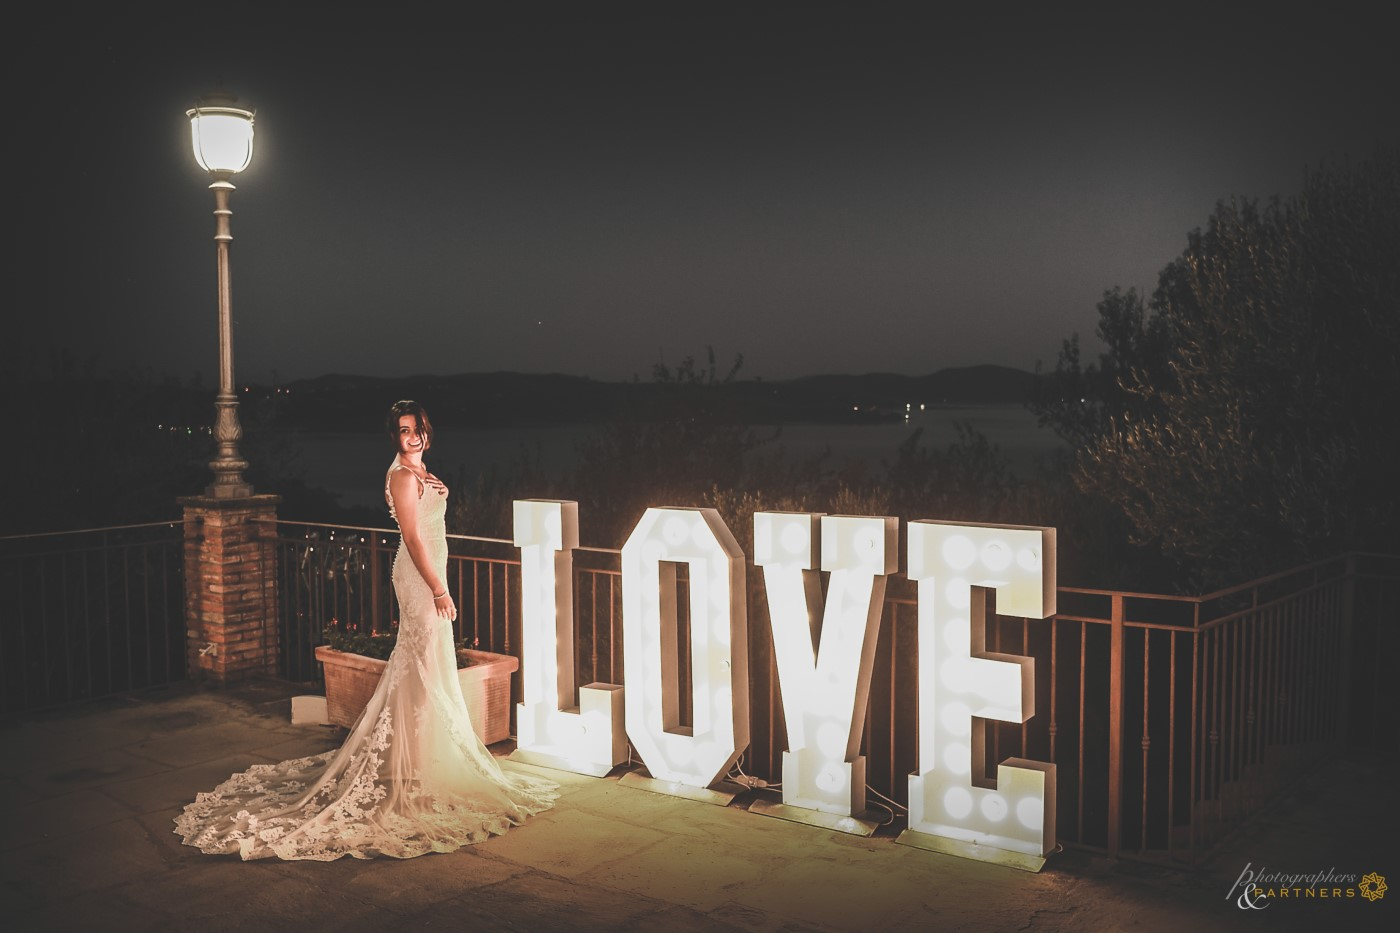 The love light letters.